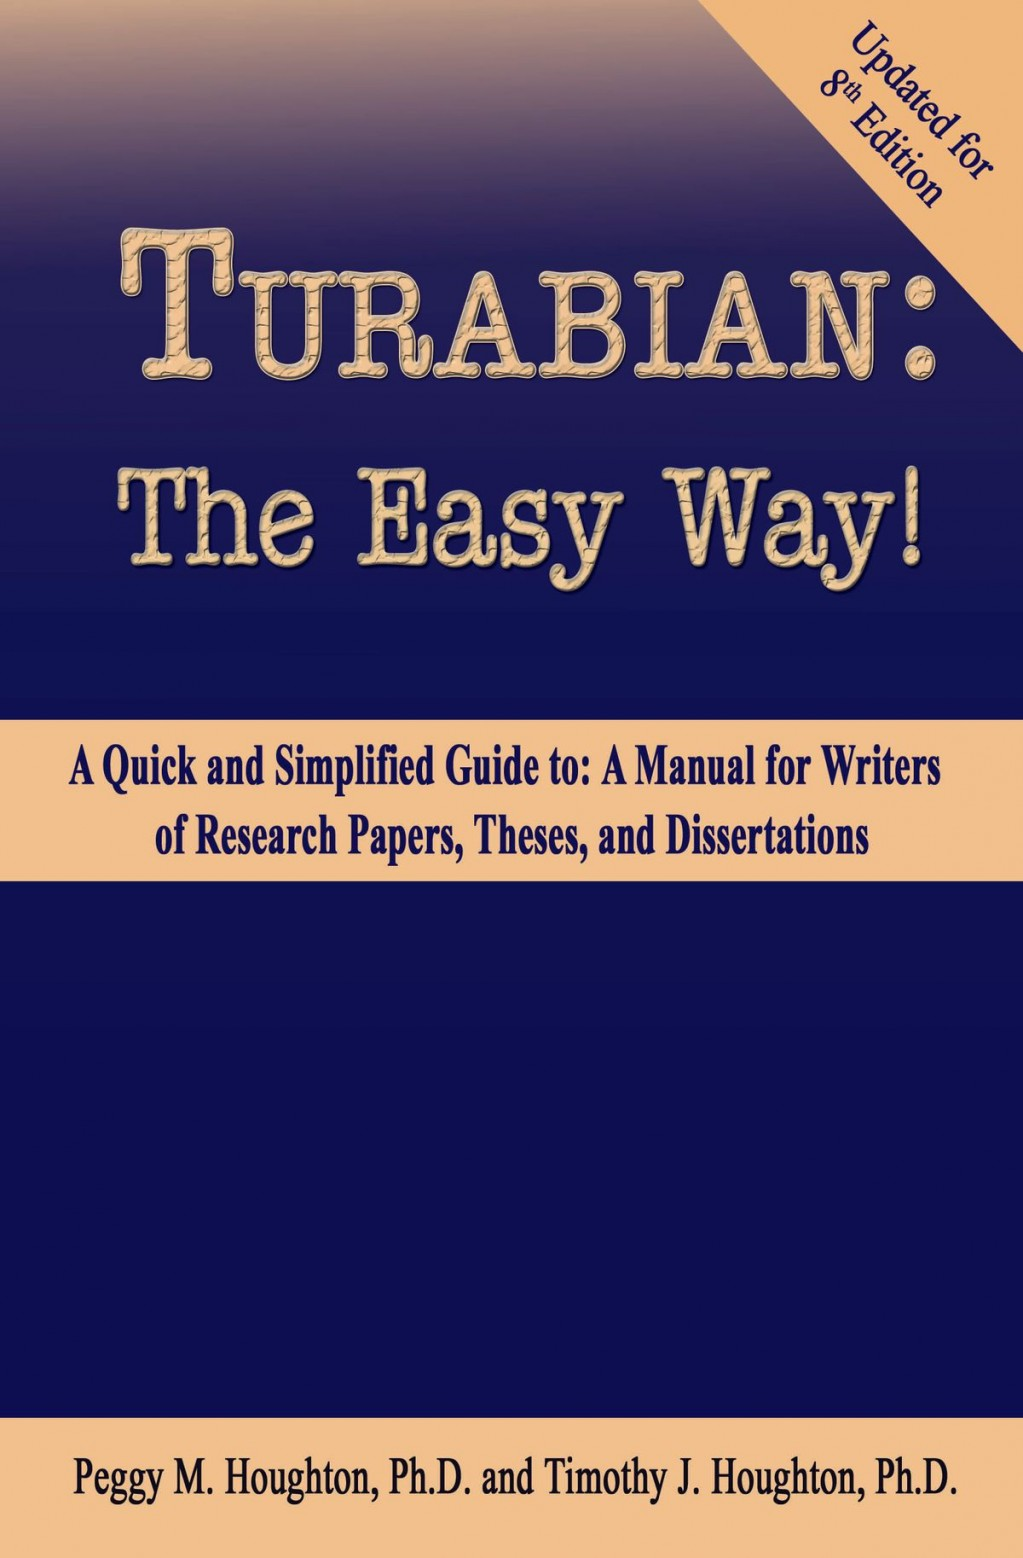 018 Research Paper Turabian The Easy Way For 8th Edition Manual Writers Of Papers Theses And Amazing A Dissertations Pdf Large